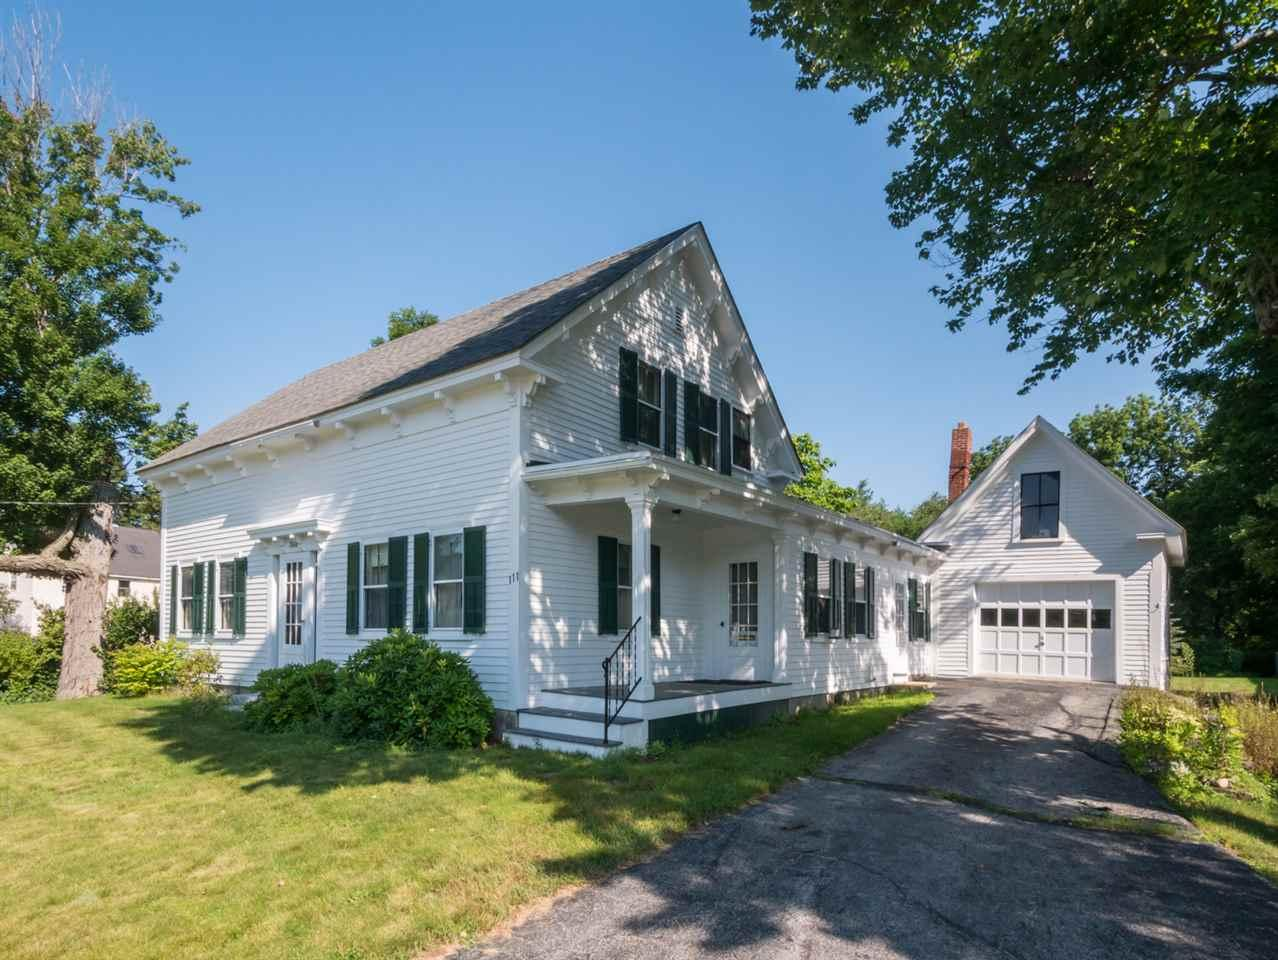 111 Central St Farmington Nh Mls 4653775 Better Homes And Gardens Real Estate